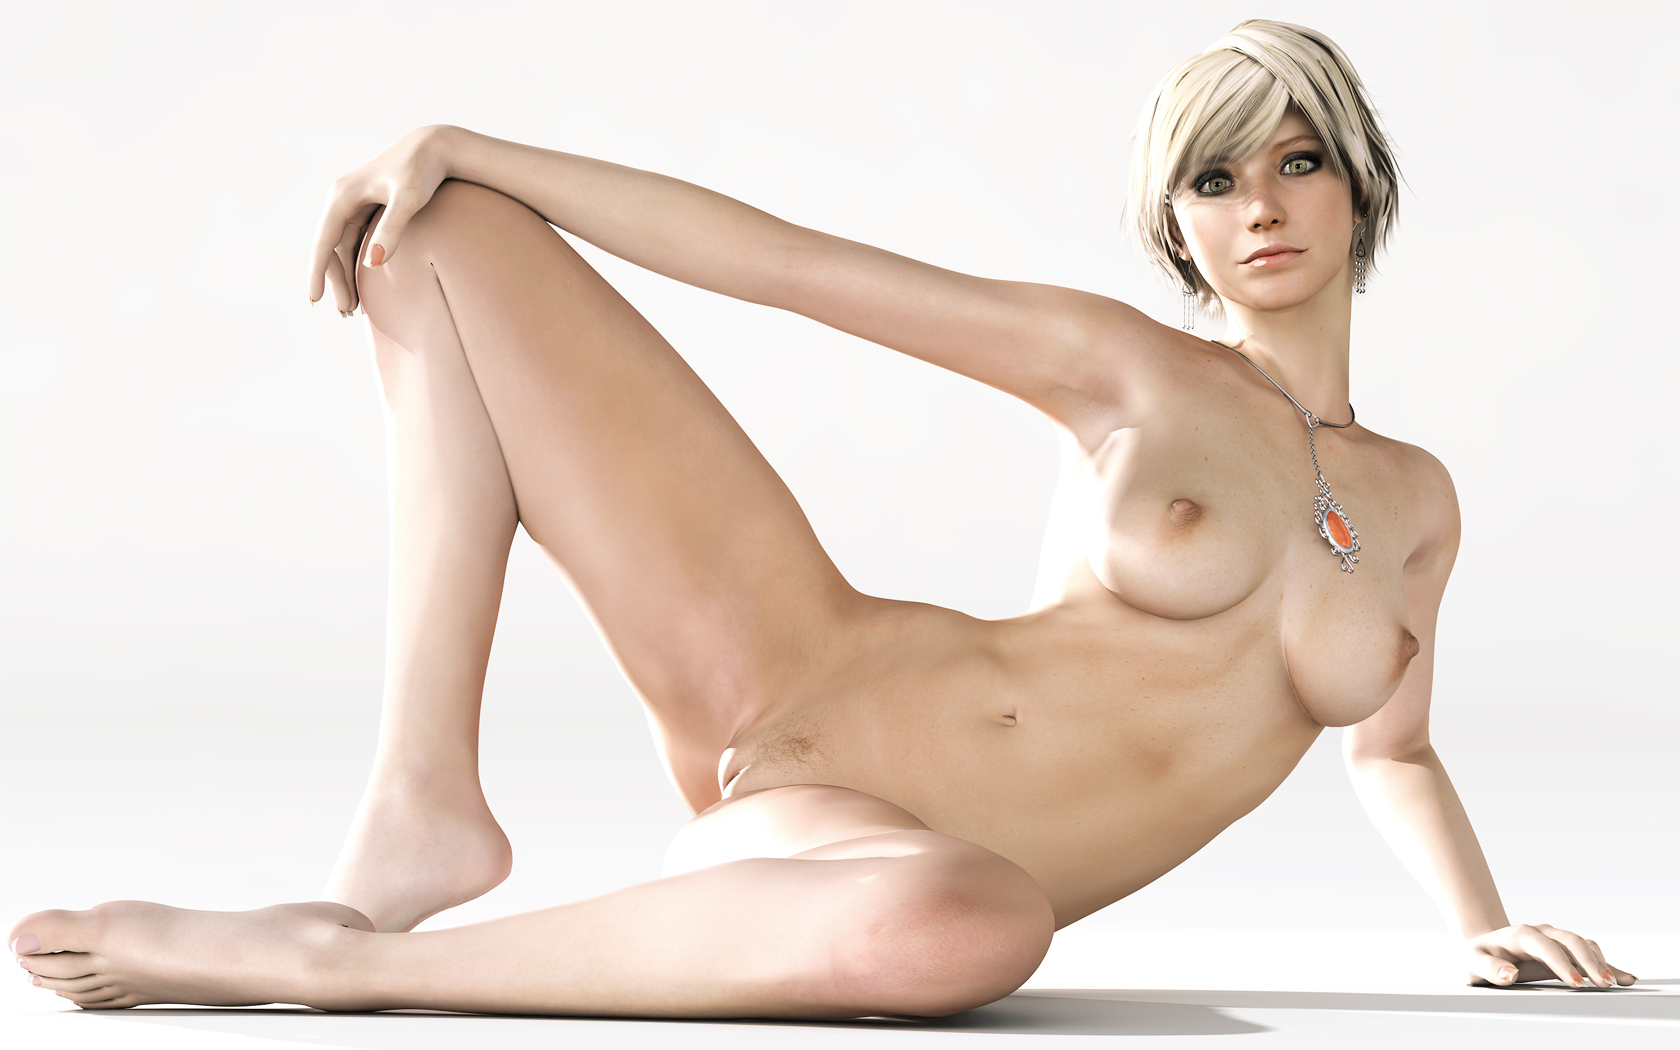 3D Cg Xxx rule 34 - 1girls 3d abs areolae arm support armpit ass